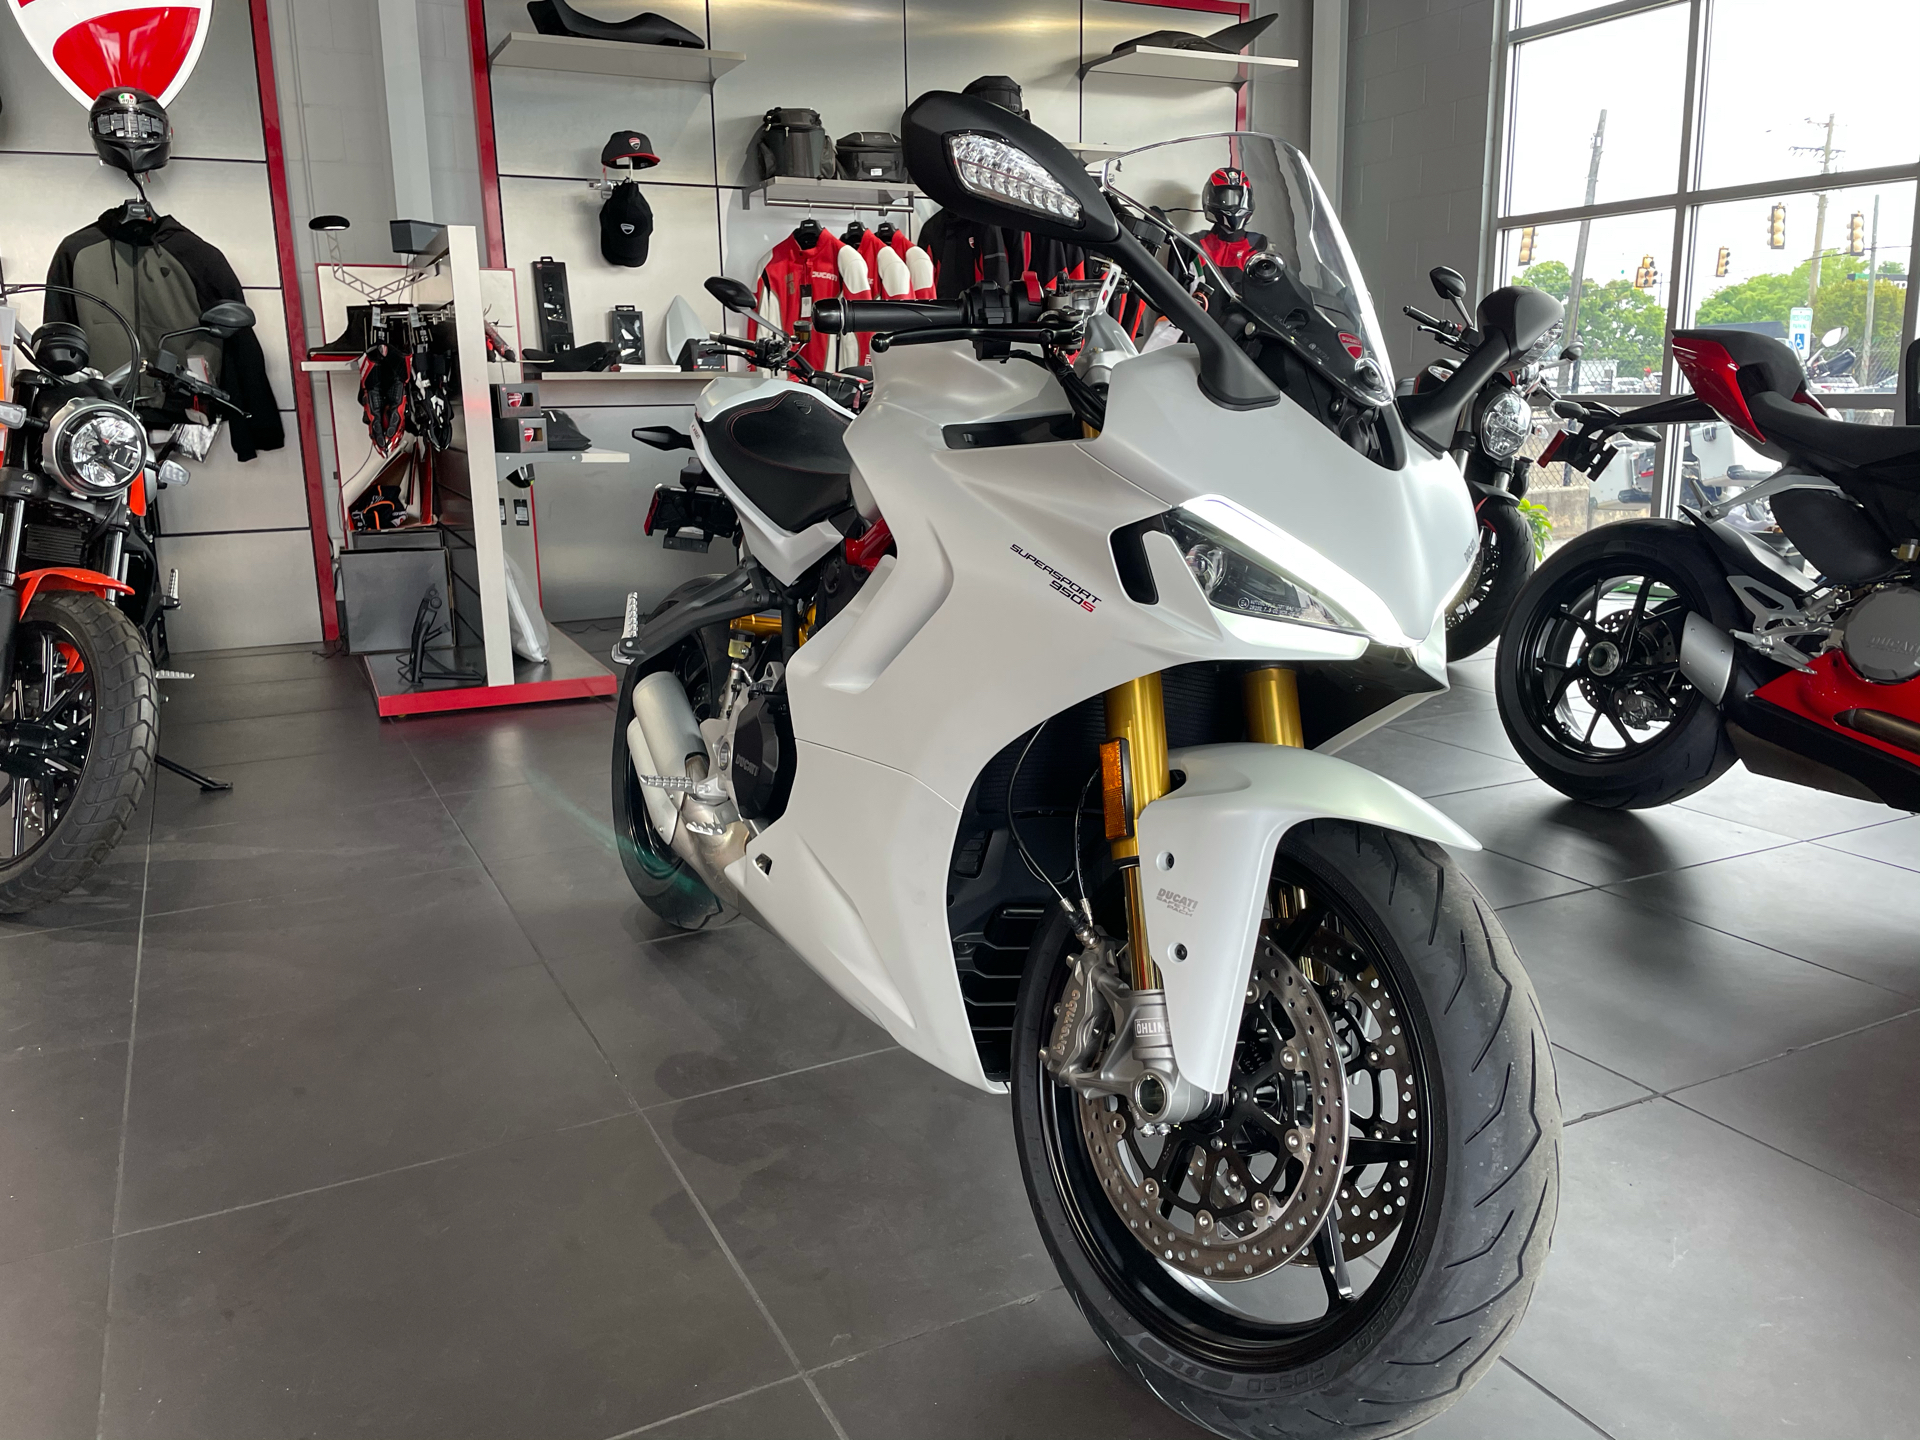 2021 Ducati SuperSport 950 S in Greenville, South Carolina - Photo 2